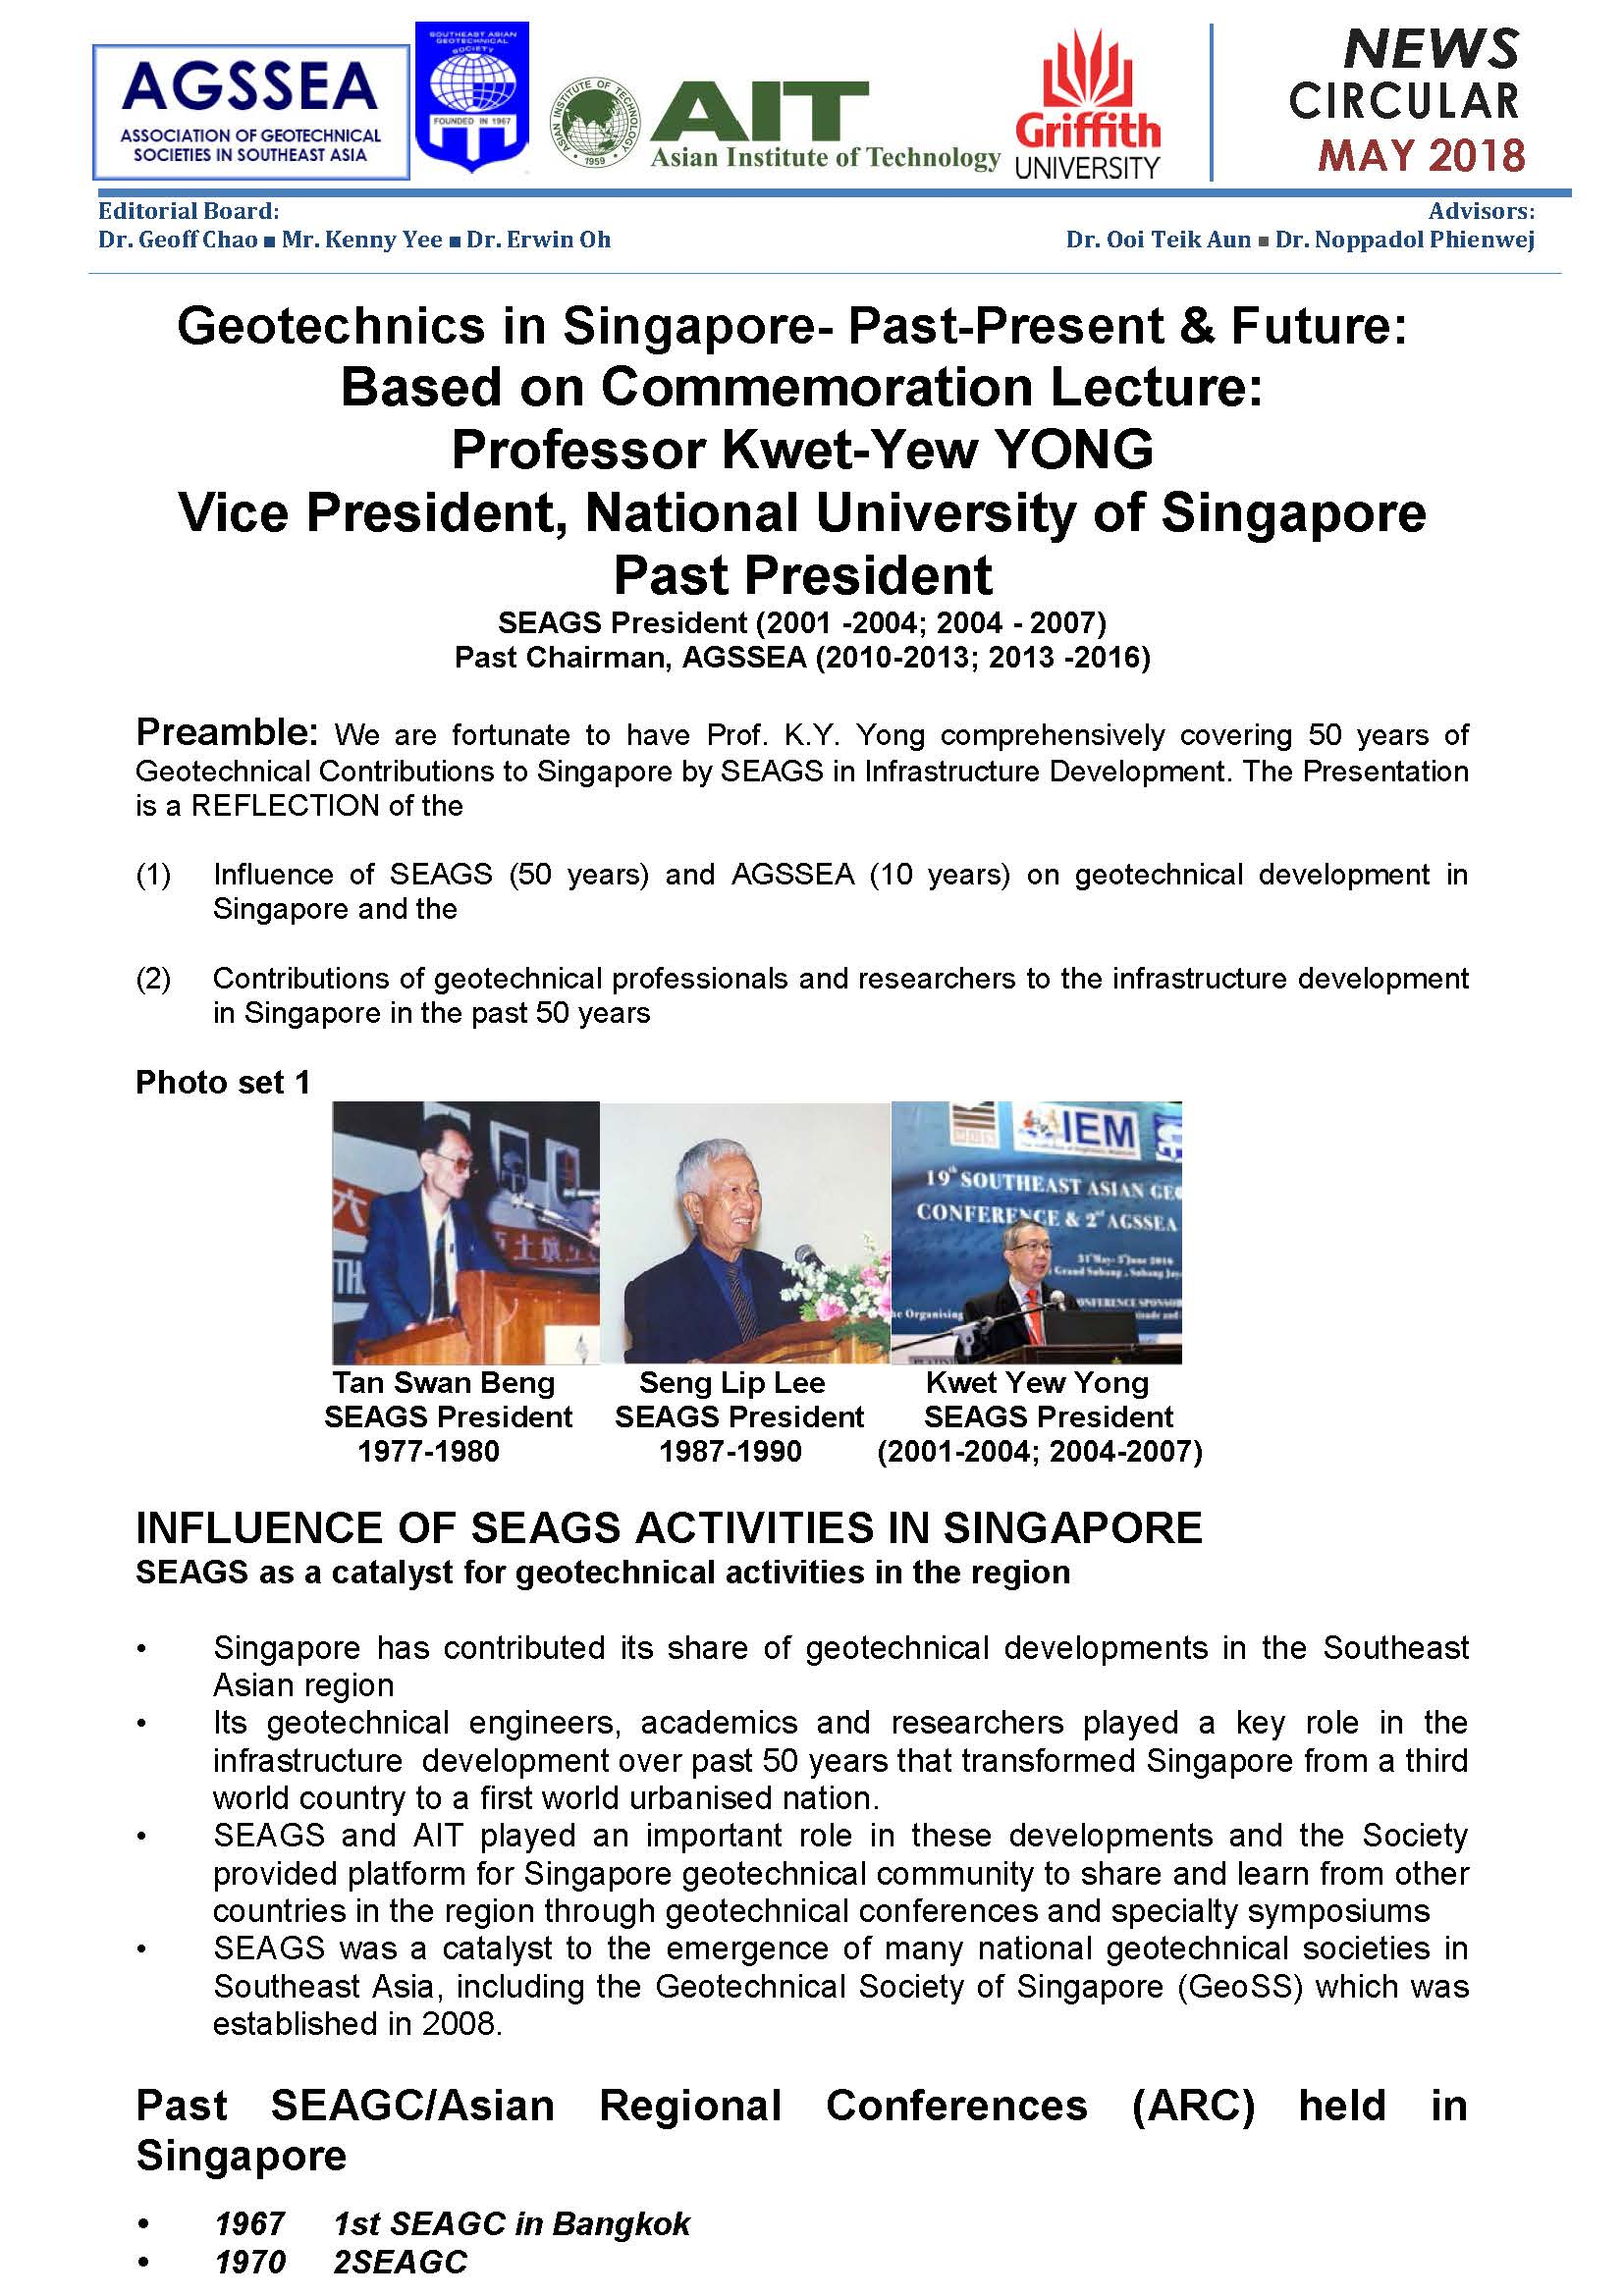 Geotechnics in Singapore-Past-Present & Future: Based on Commemoration Lecture: Professor Kwet-Yew YONG [cont.]